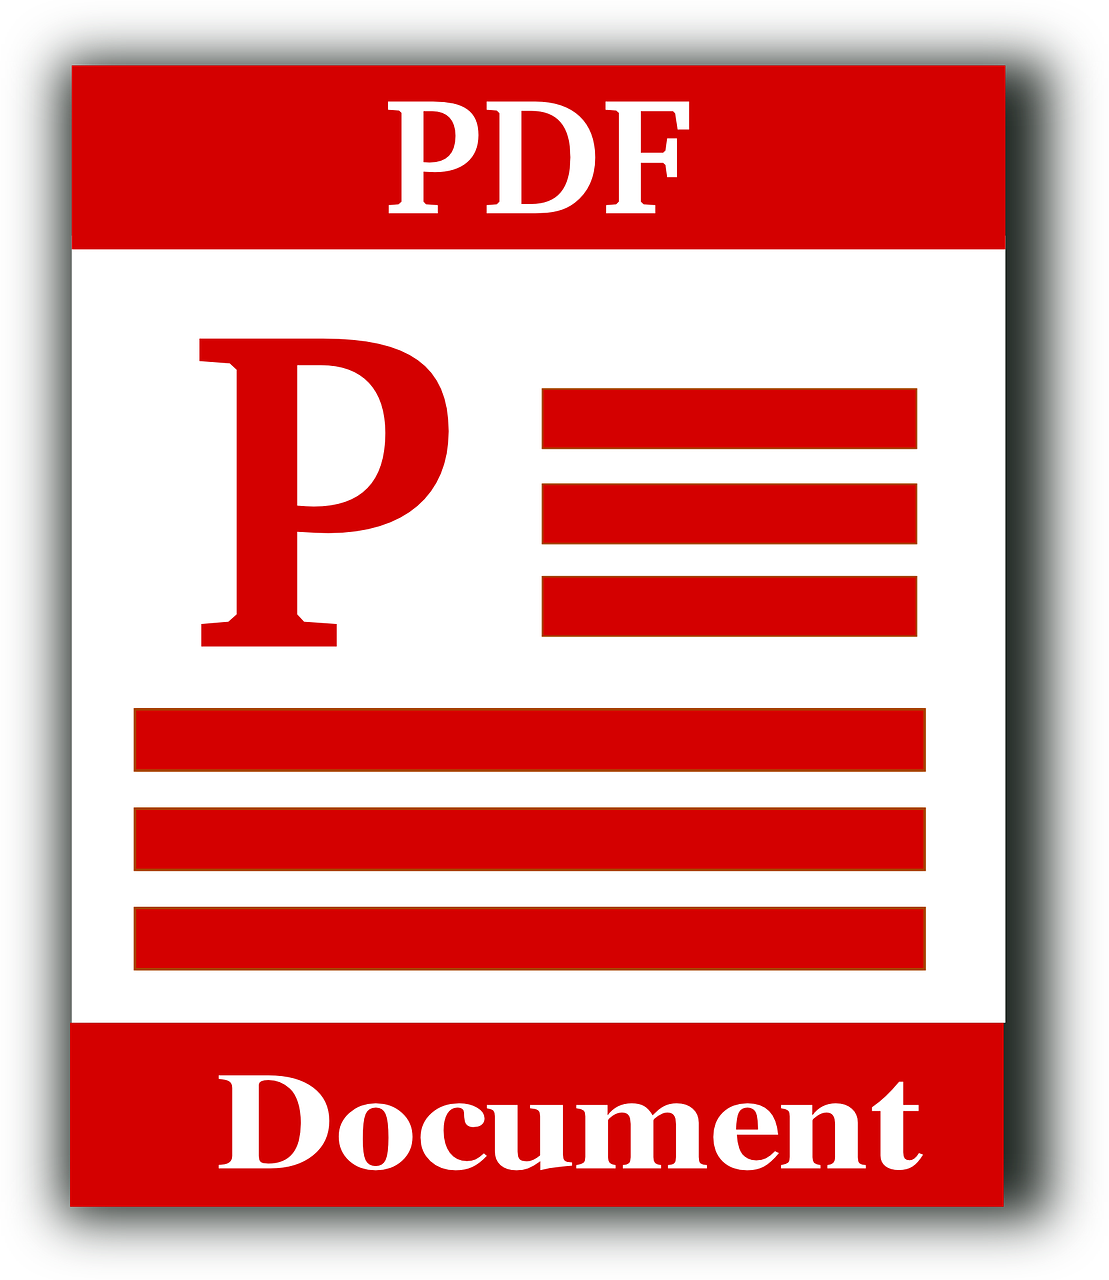 Stop PDF Theft by Making Documents Uncopyable